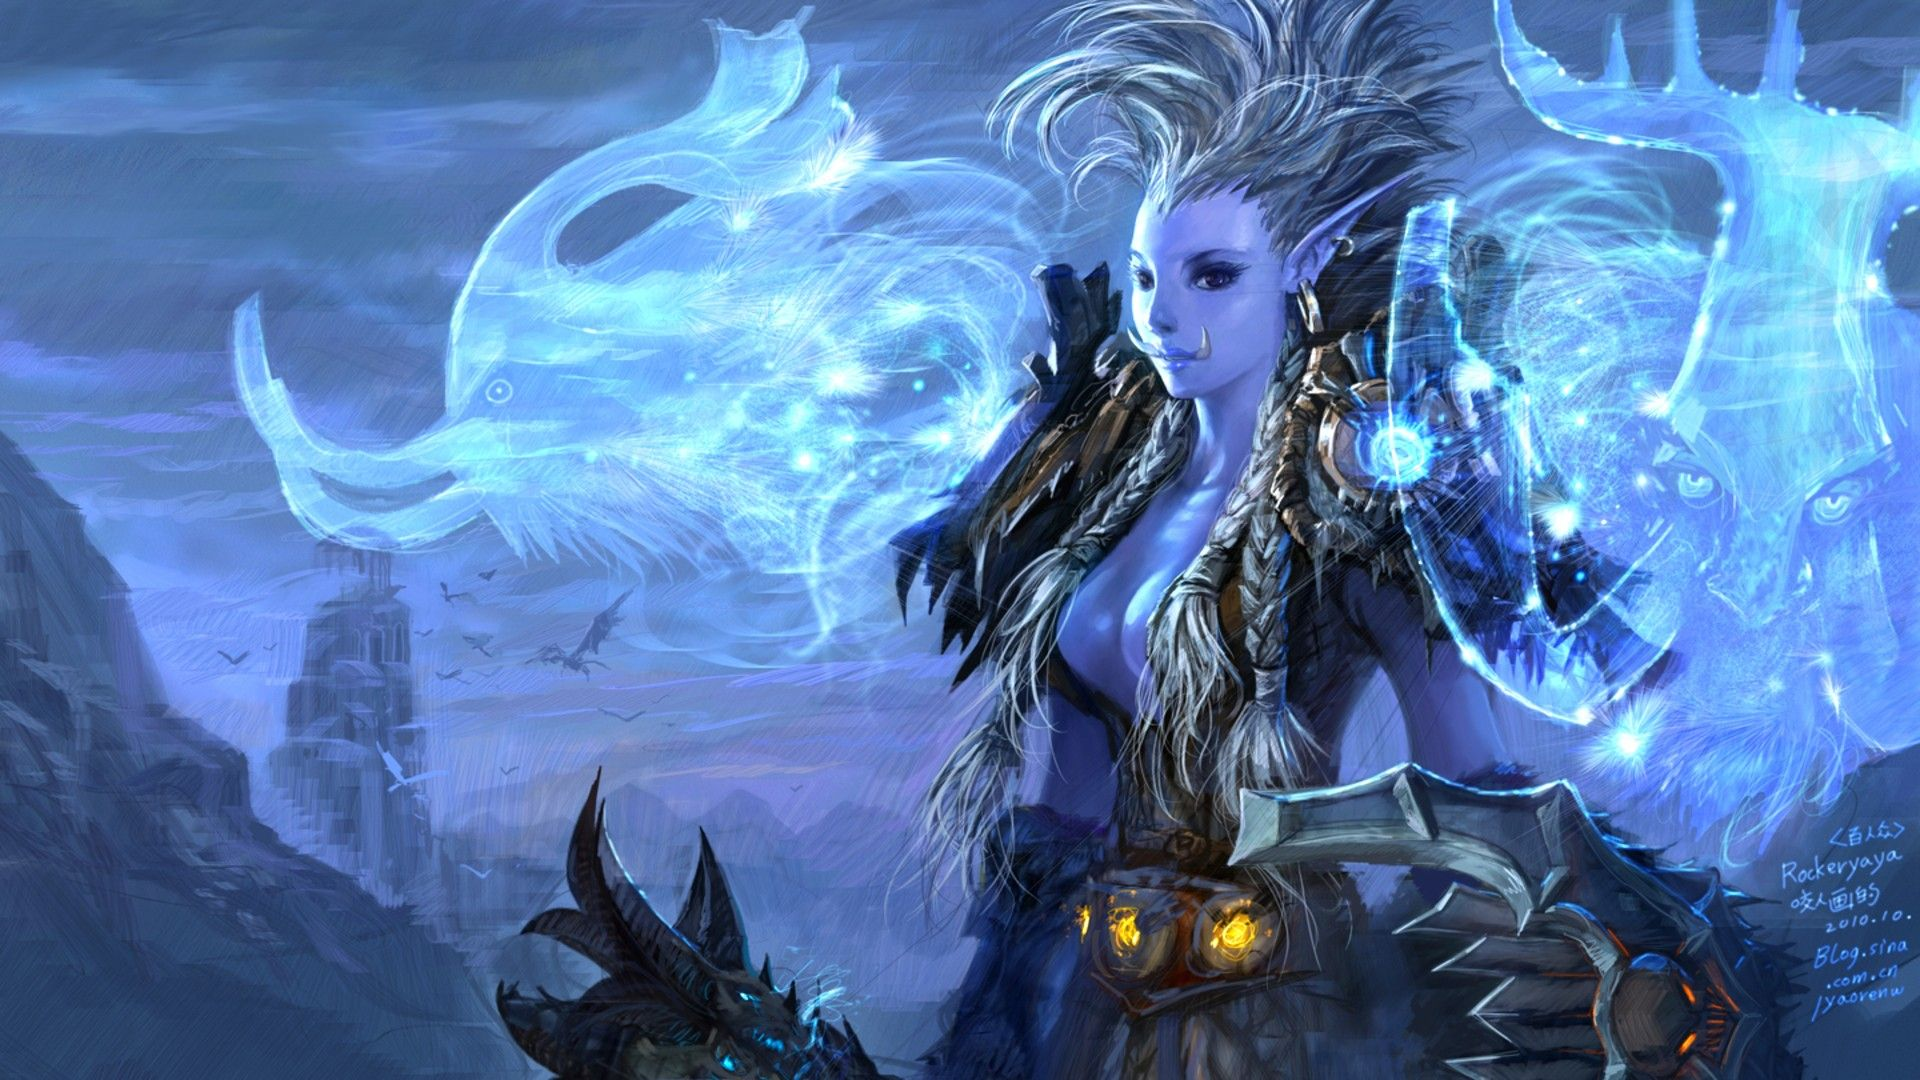 Game Wallpapers, World Of Warcraft Arthas Lich King